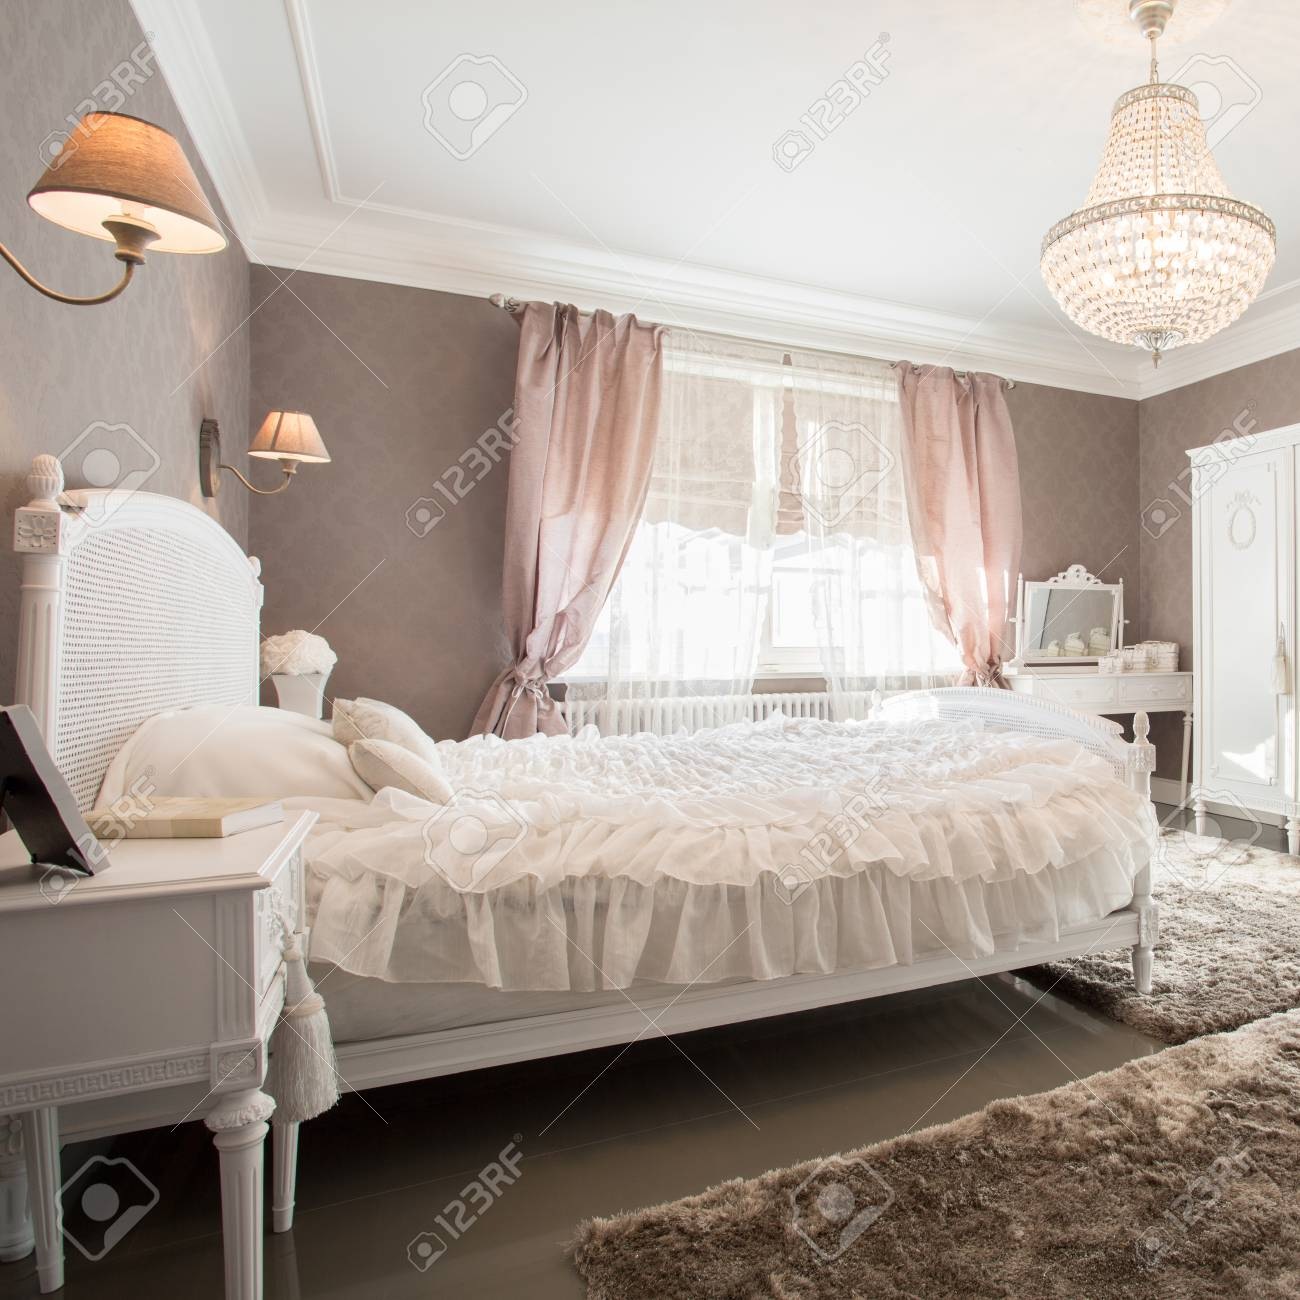 Enormous Luxury Old Fashioned Bedroom With Crystal Chandelier Stock ...